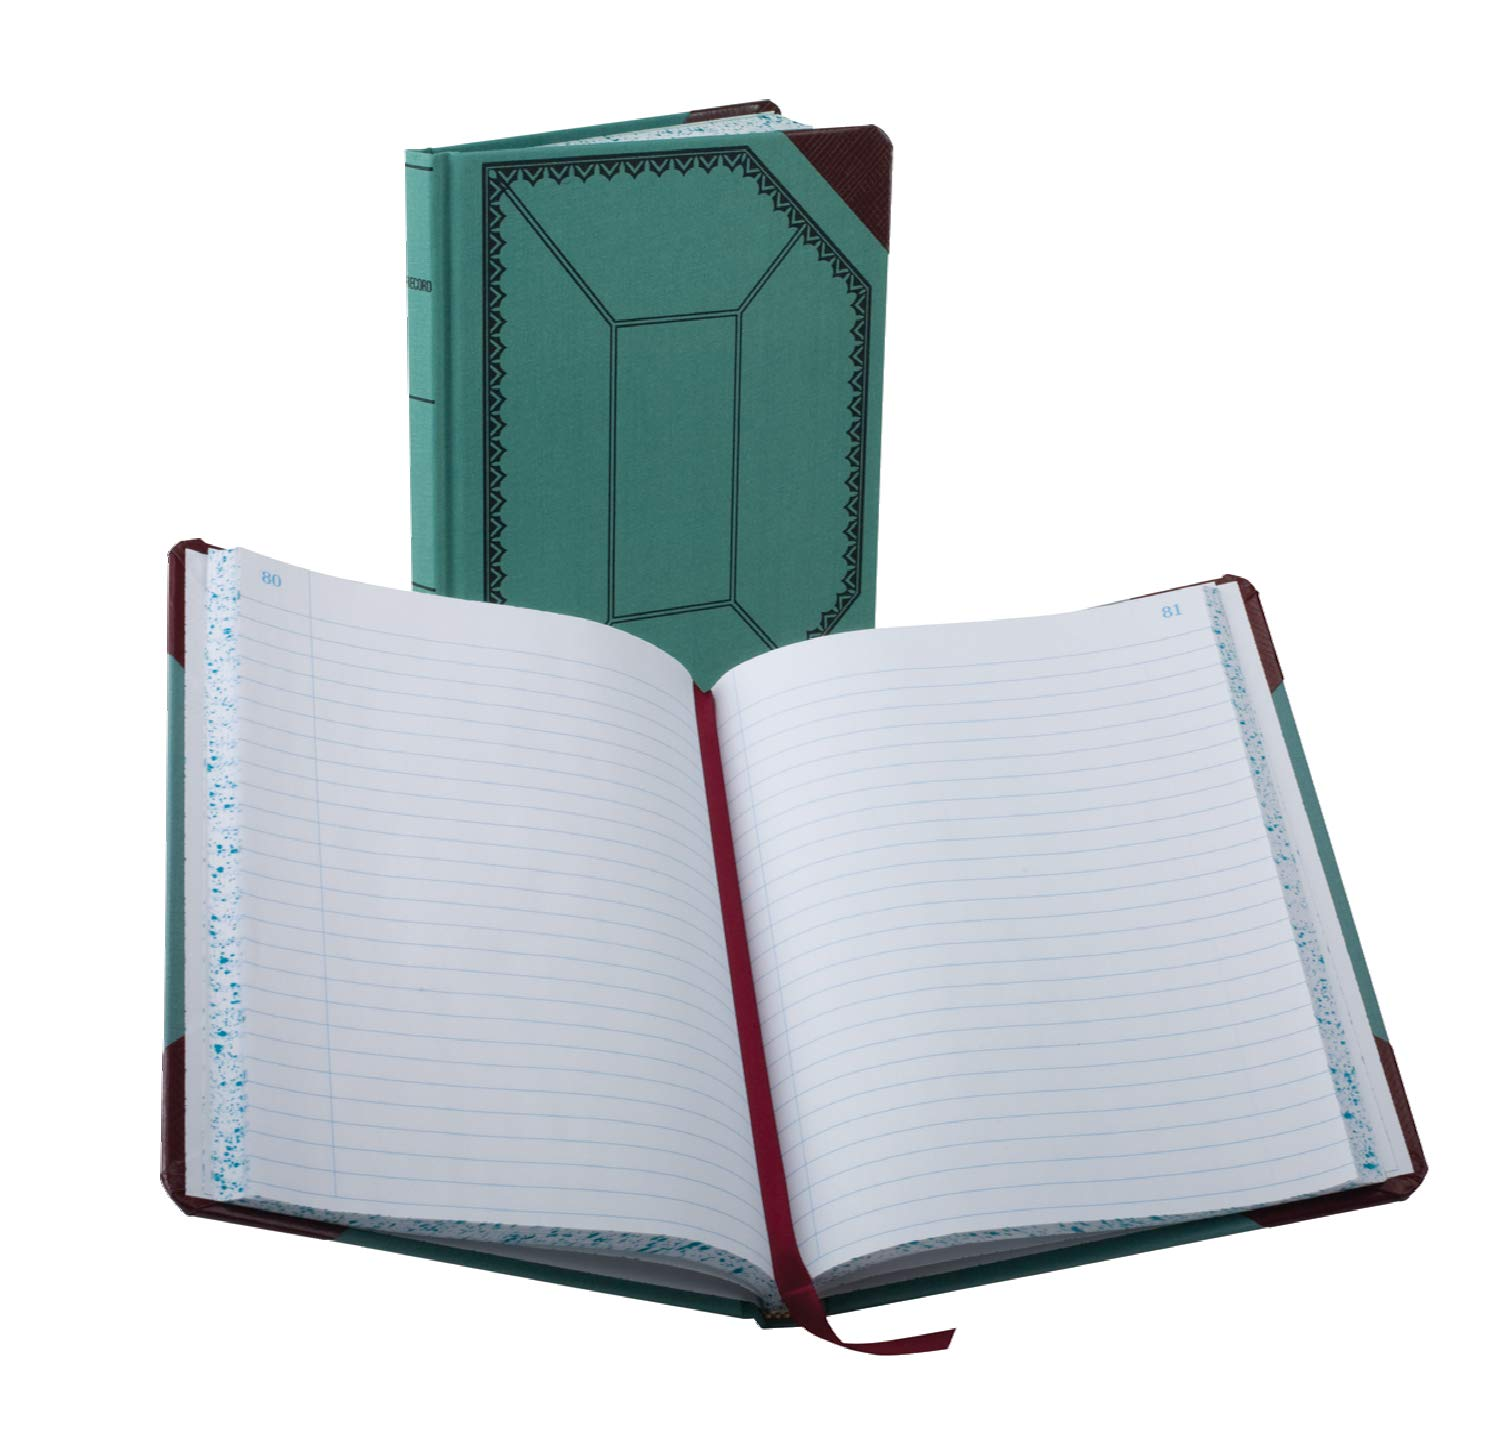 Boorum & Pease 3738150R Record/Account Book, Blue/Red Cover, 150 Pages, 9 5/8 x 7 5/8 by Boorum & Pease